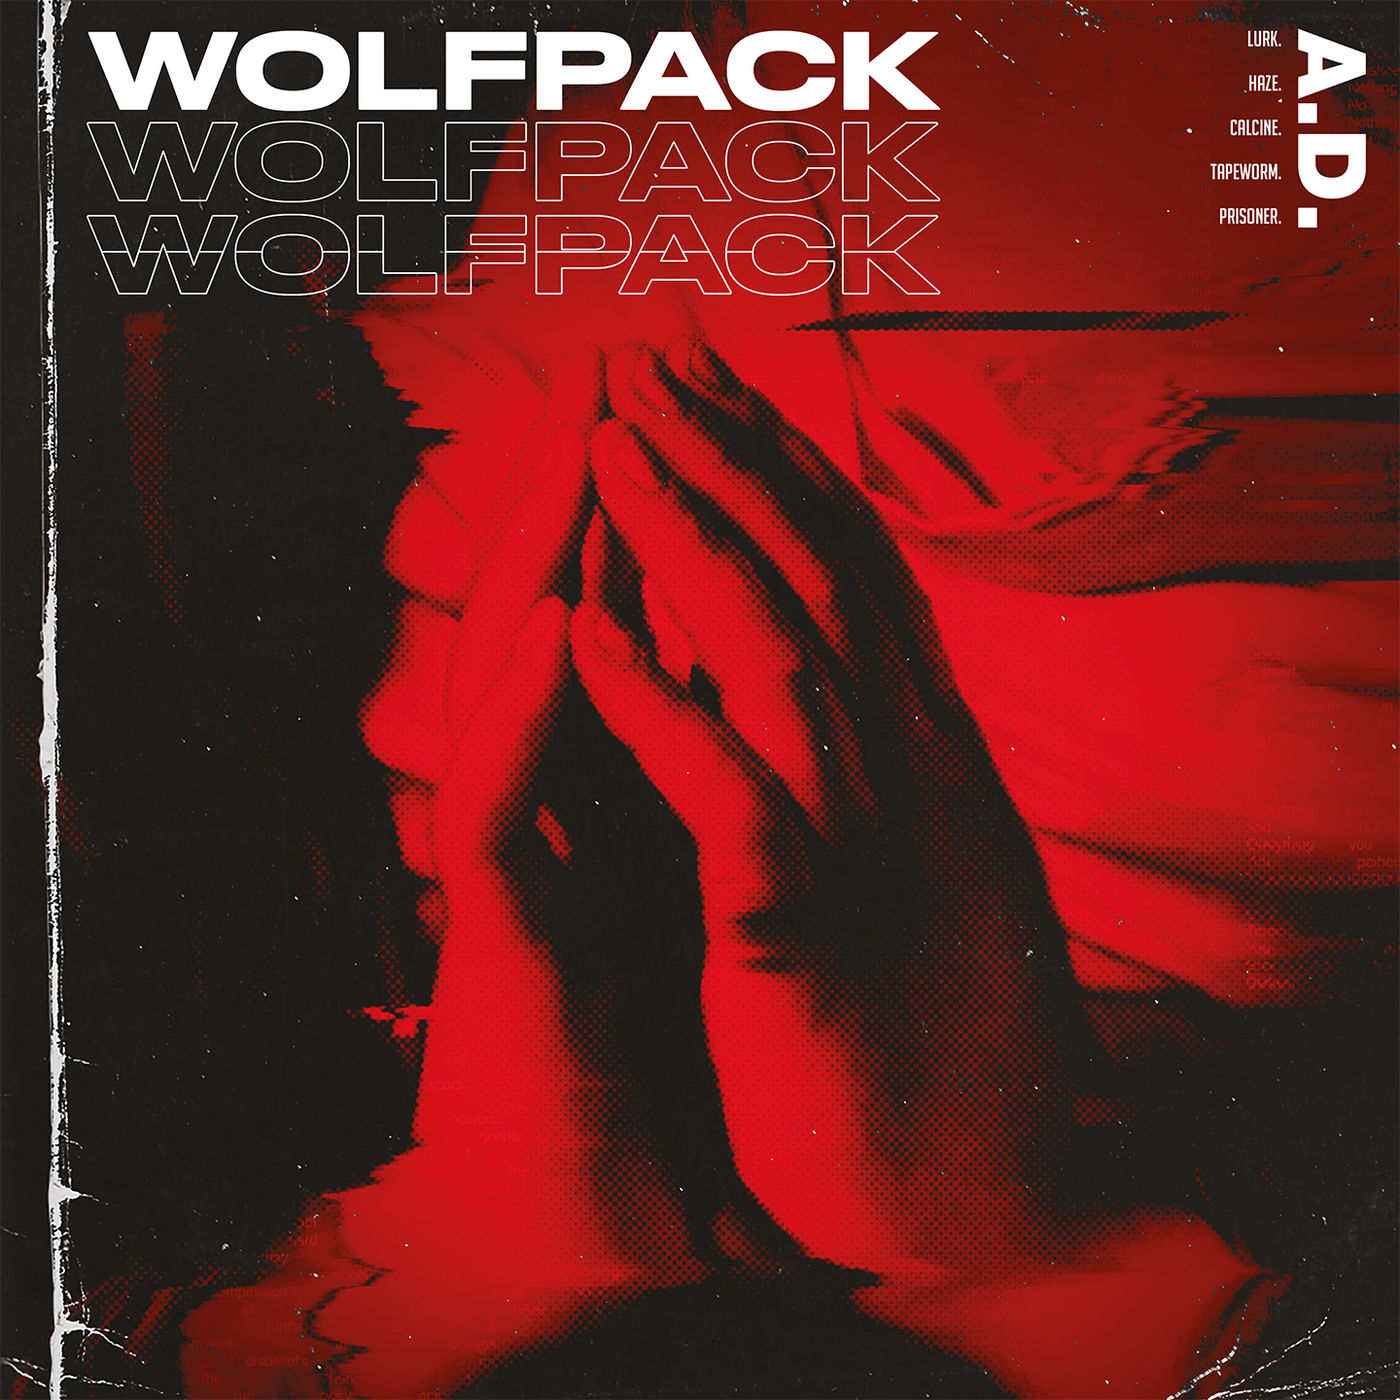 Wolfpack – A.D.